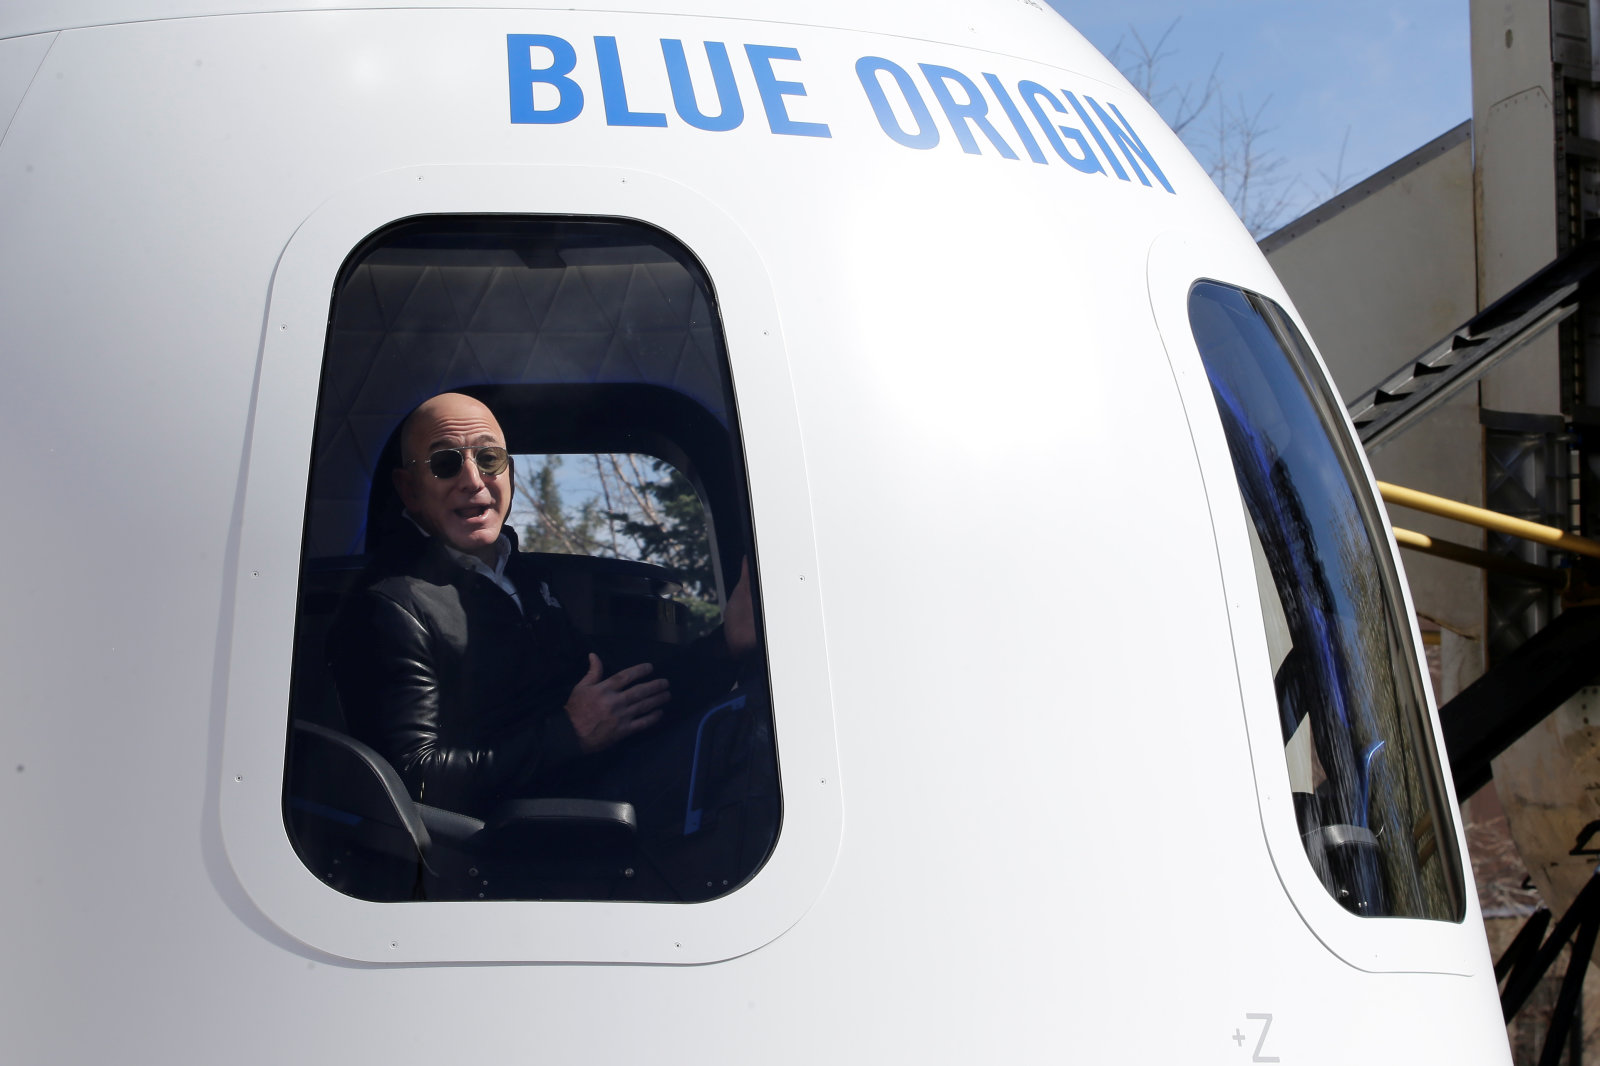 Amazon and Blue Origin founder Jeff Bezos addresses the media about the New Shepard rocket booster and Crew Capsule mockup at the 33rd Space Symposium in Colorado Springs, Colorado, United States April 5, 2017.  REUTERS/Isaiah J. Downing     TPX IMAGES OF THE DAY